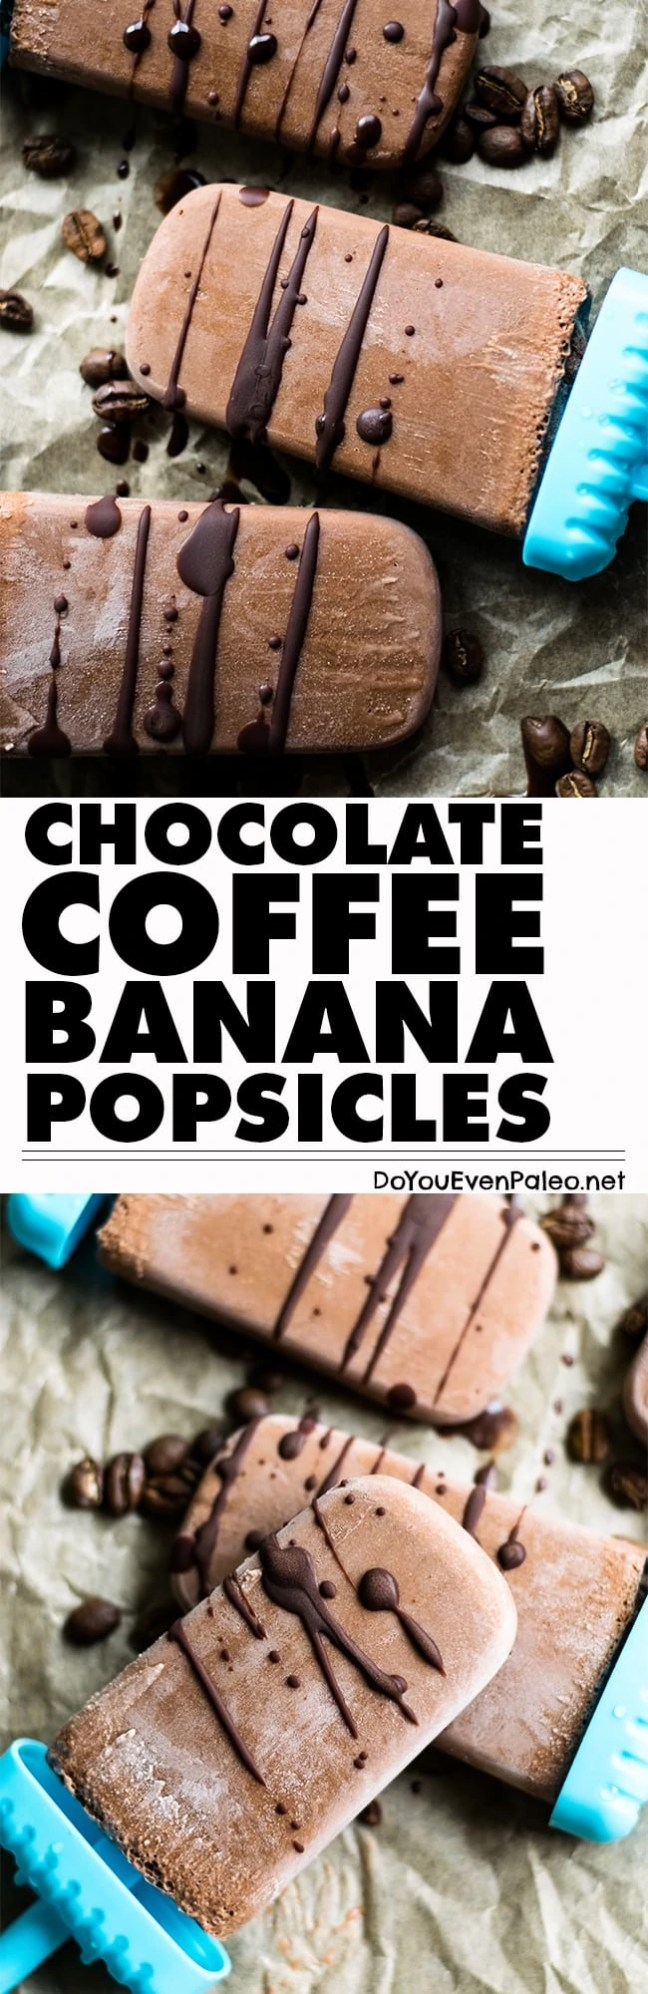 Chocolate Coffee Banana Popsicles are the best way to start your day! Only 5 ingredients and they're paleo, gluten free, vegan, and unsweetened. | DoYouEvenPaleo.net